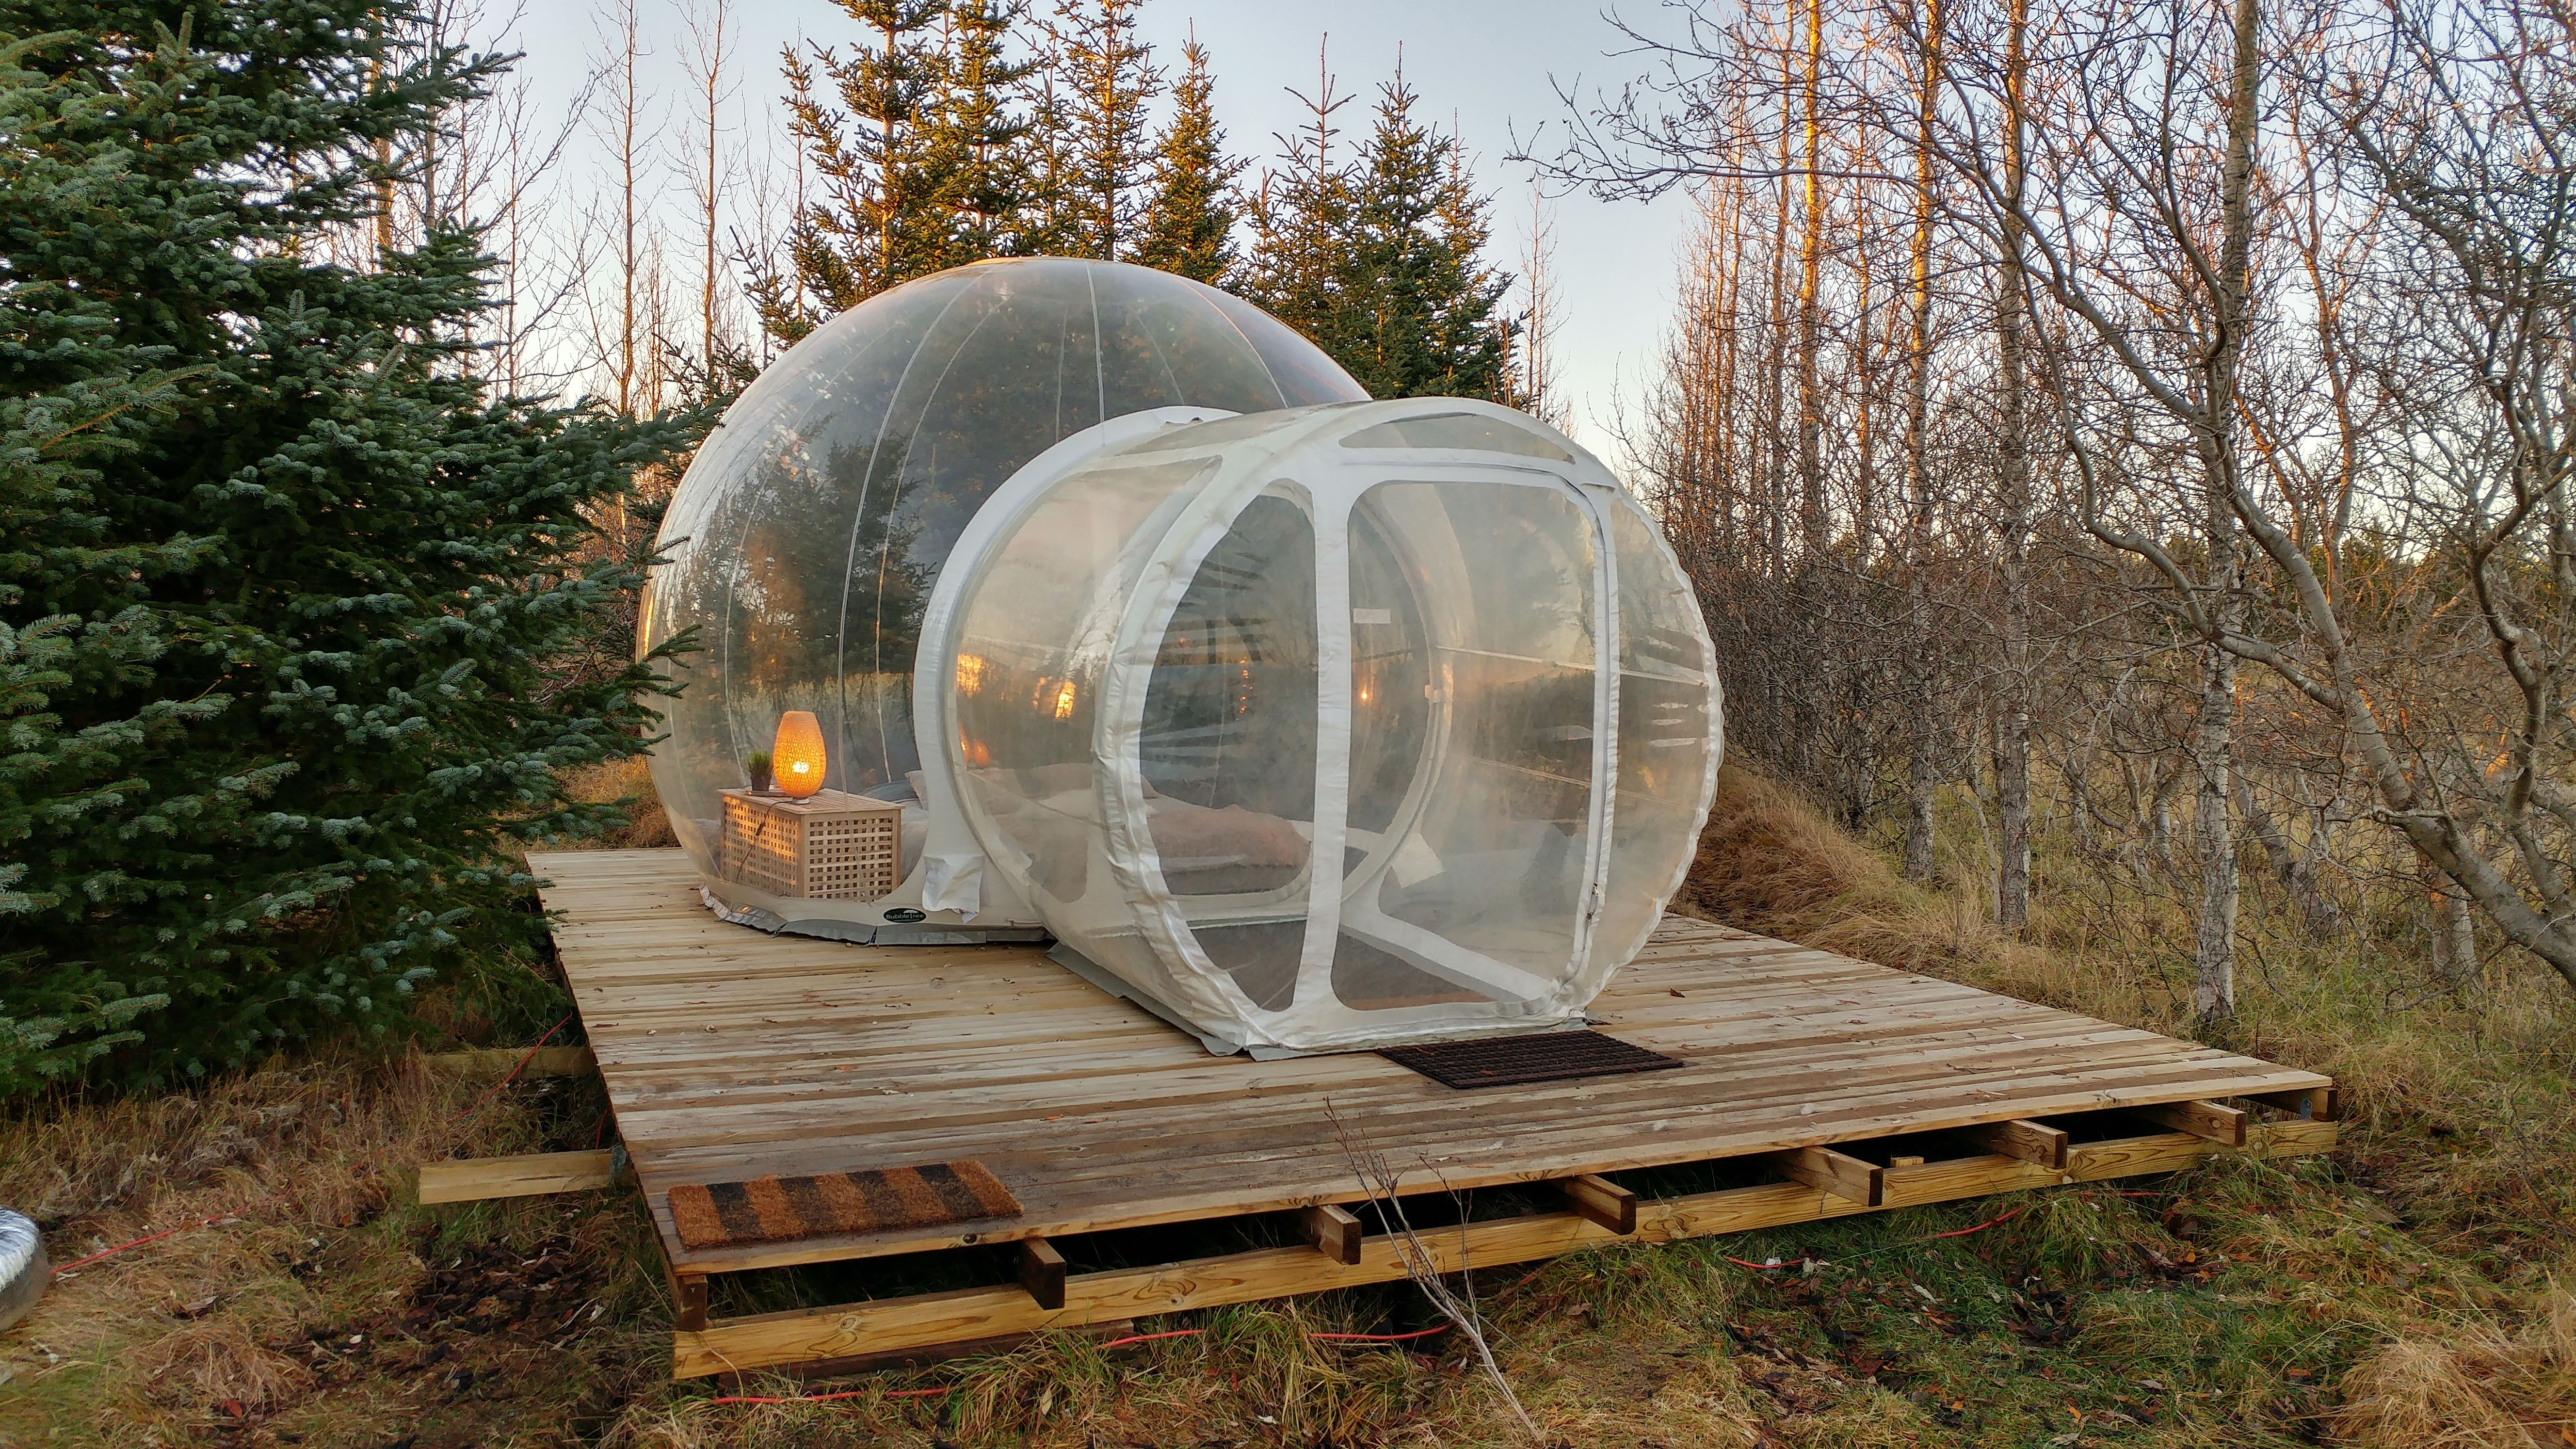 Communication on this topic: Step Inside Icelands Zany Buubble Hotel, step-inside-icelands-zany-buubble-hotel/